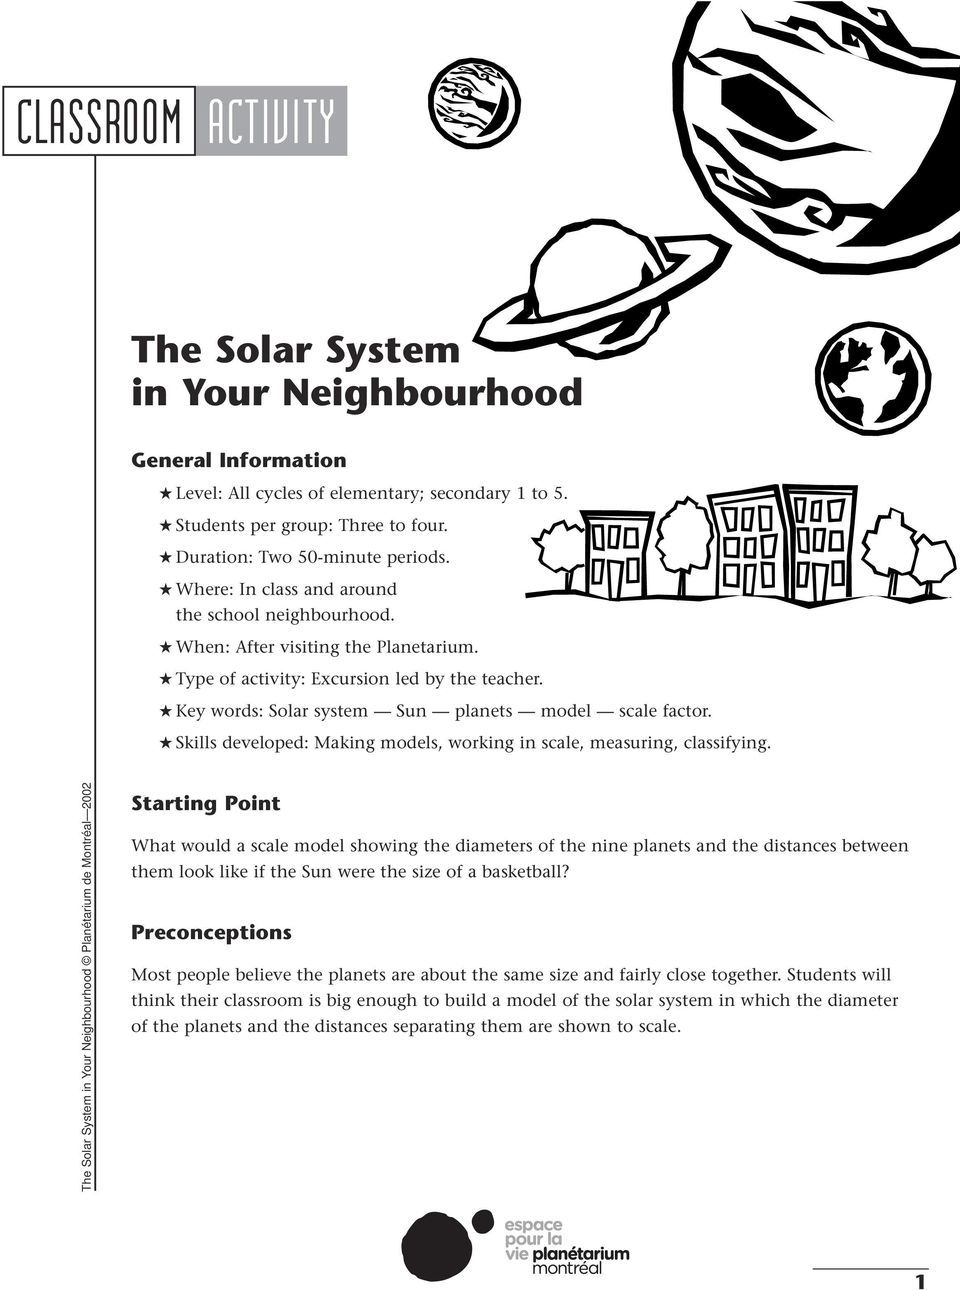 The Solar System in Your Neighbourhood - PDF